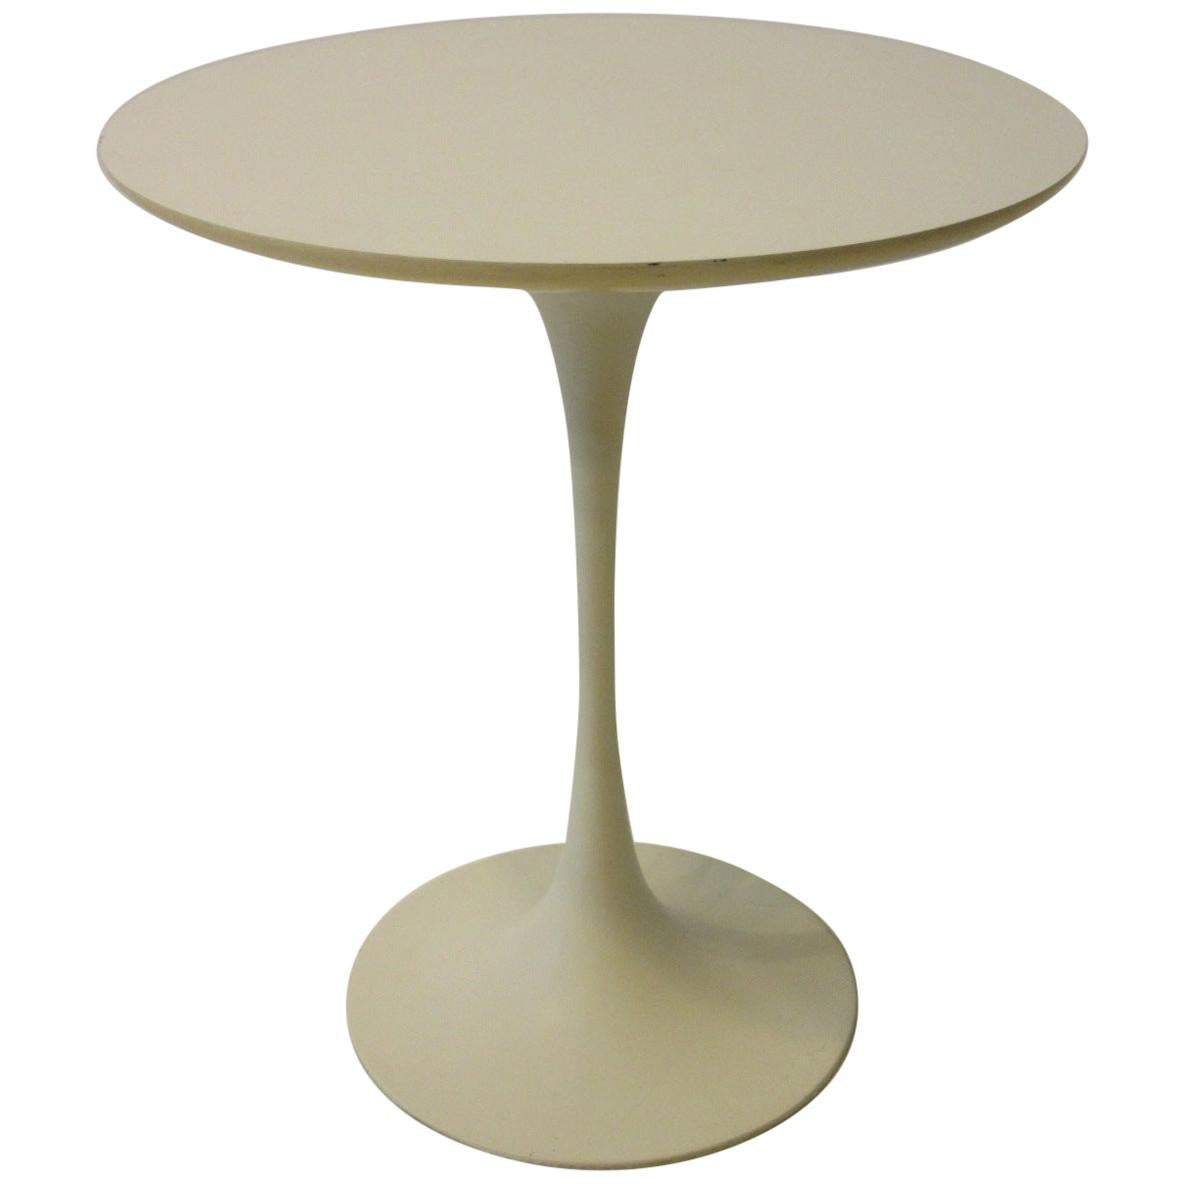 Tulip Pedestal Side Table in the Style of Saarinen by Maurice Burke